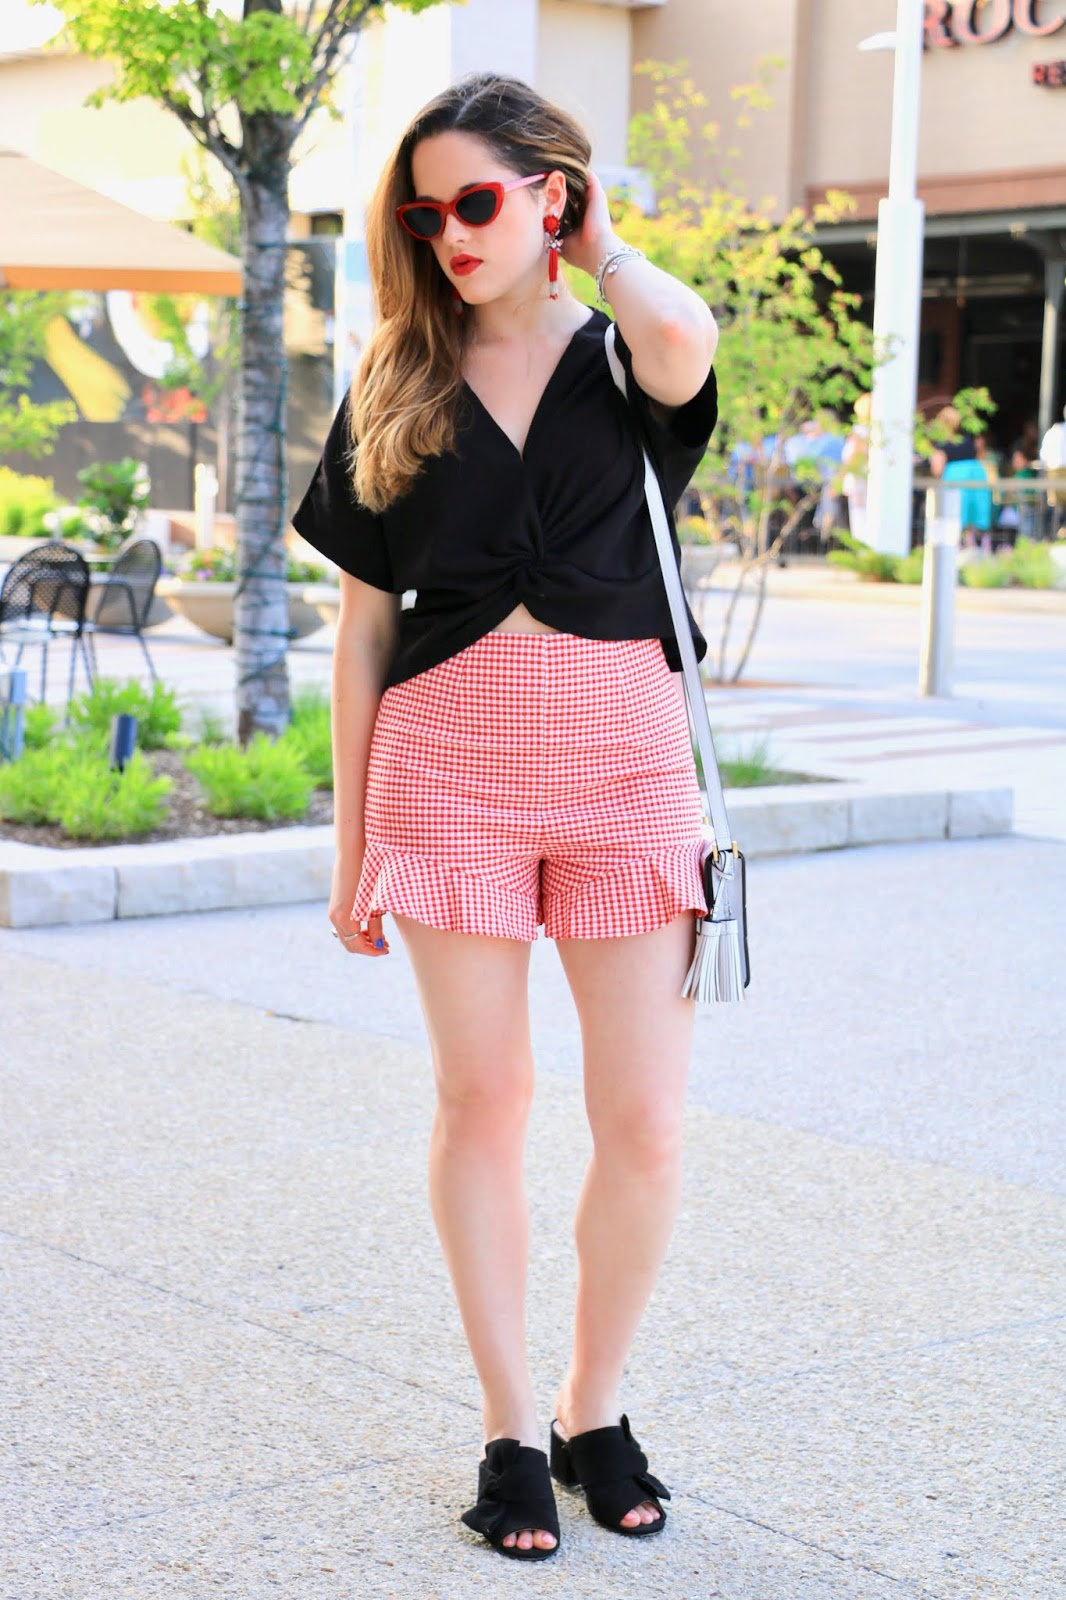 Nyc fashion blogger Kathleen Harper showing how to wear red gingham shorts